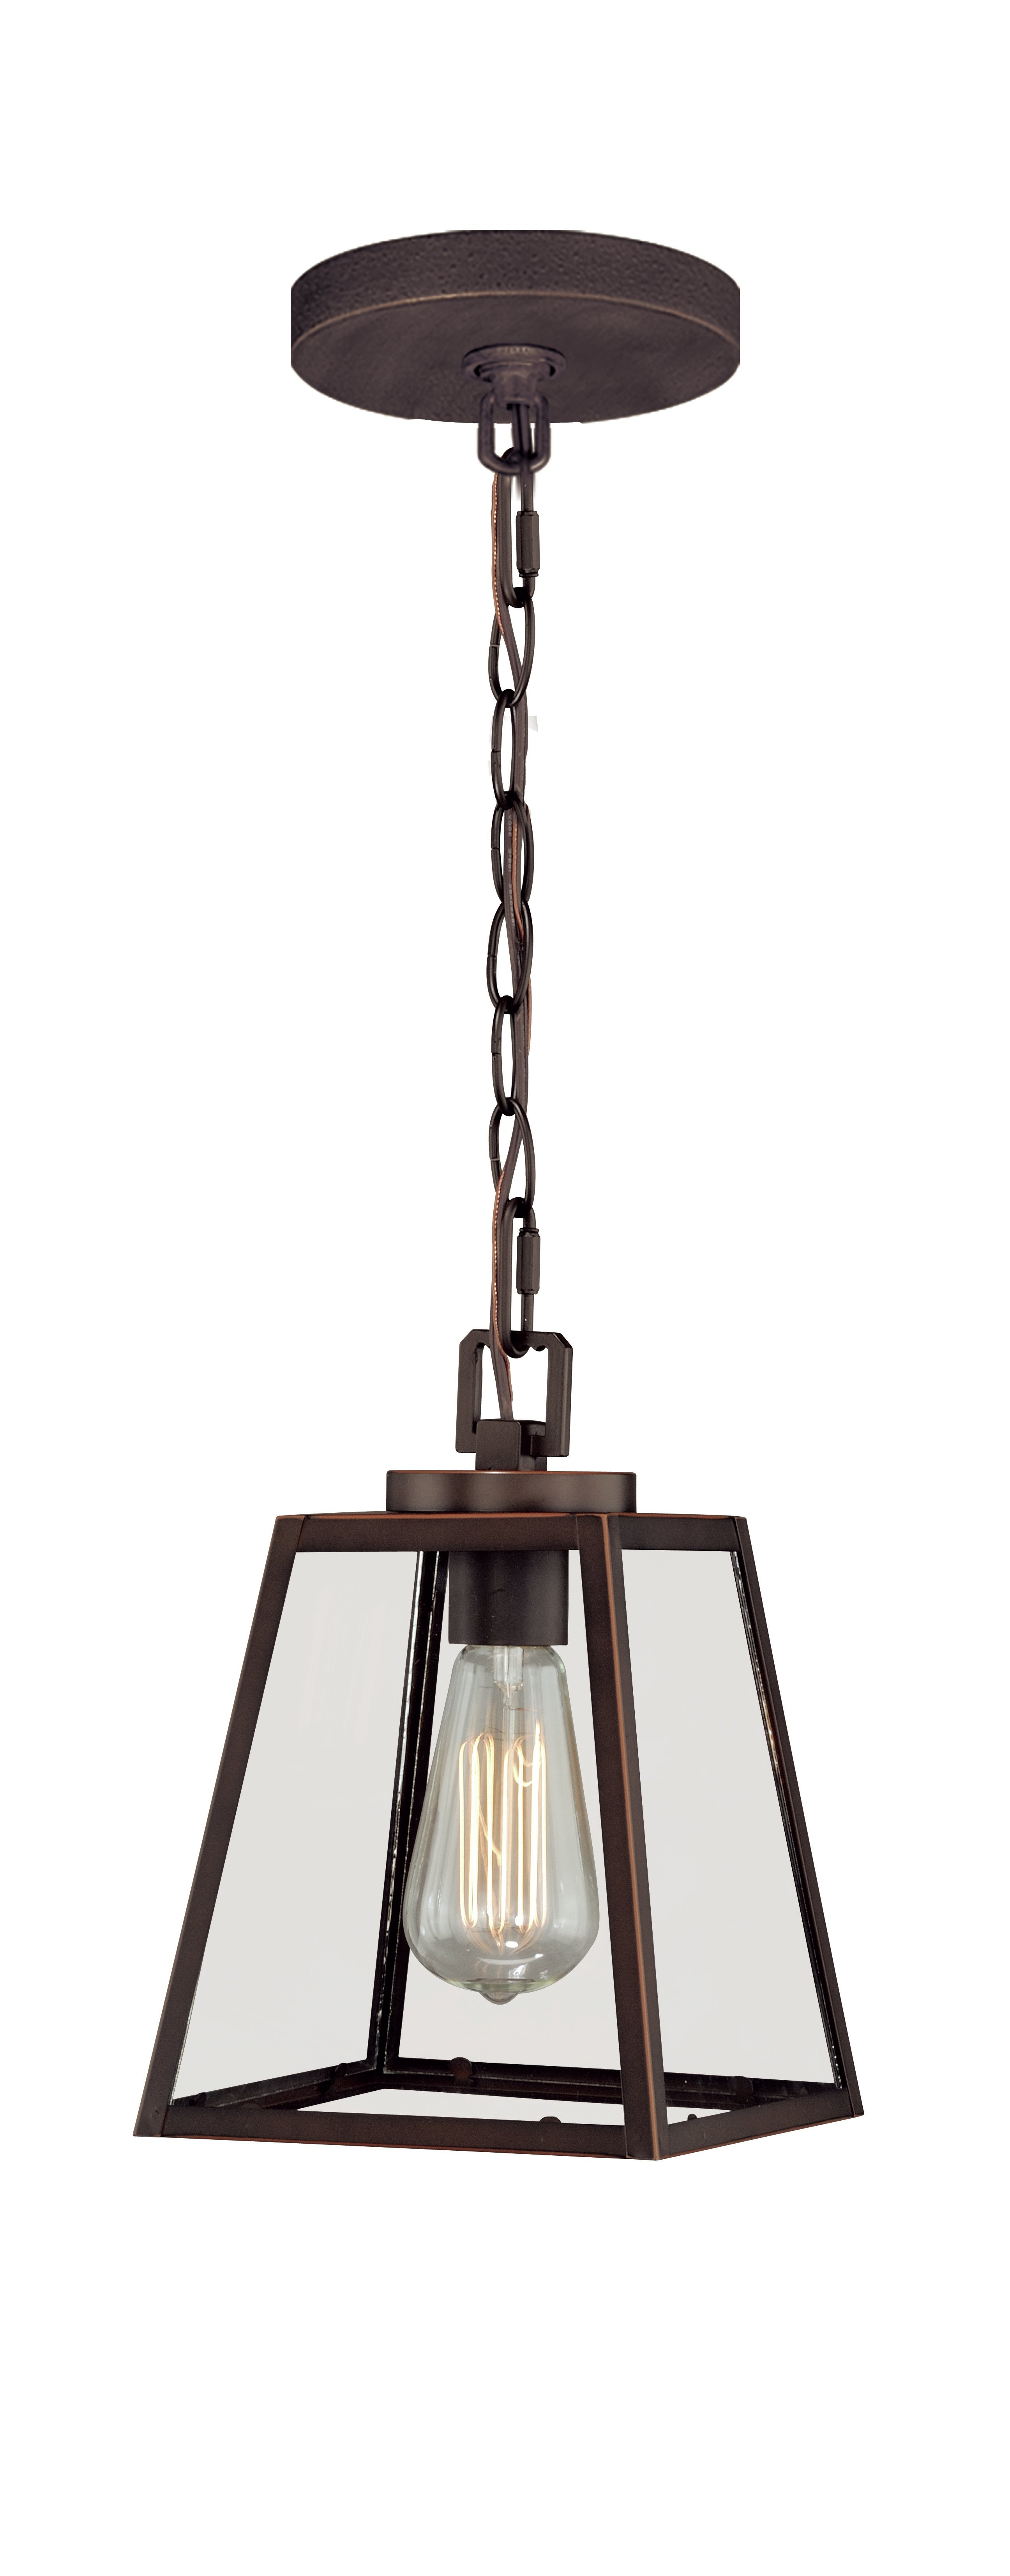 Louanne 1 Light Lantern Geometric Pendants With Fashionable Louanne 1 Light Lantern Geometric Pendant (View 15 of 20)